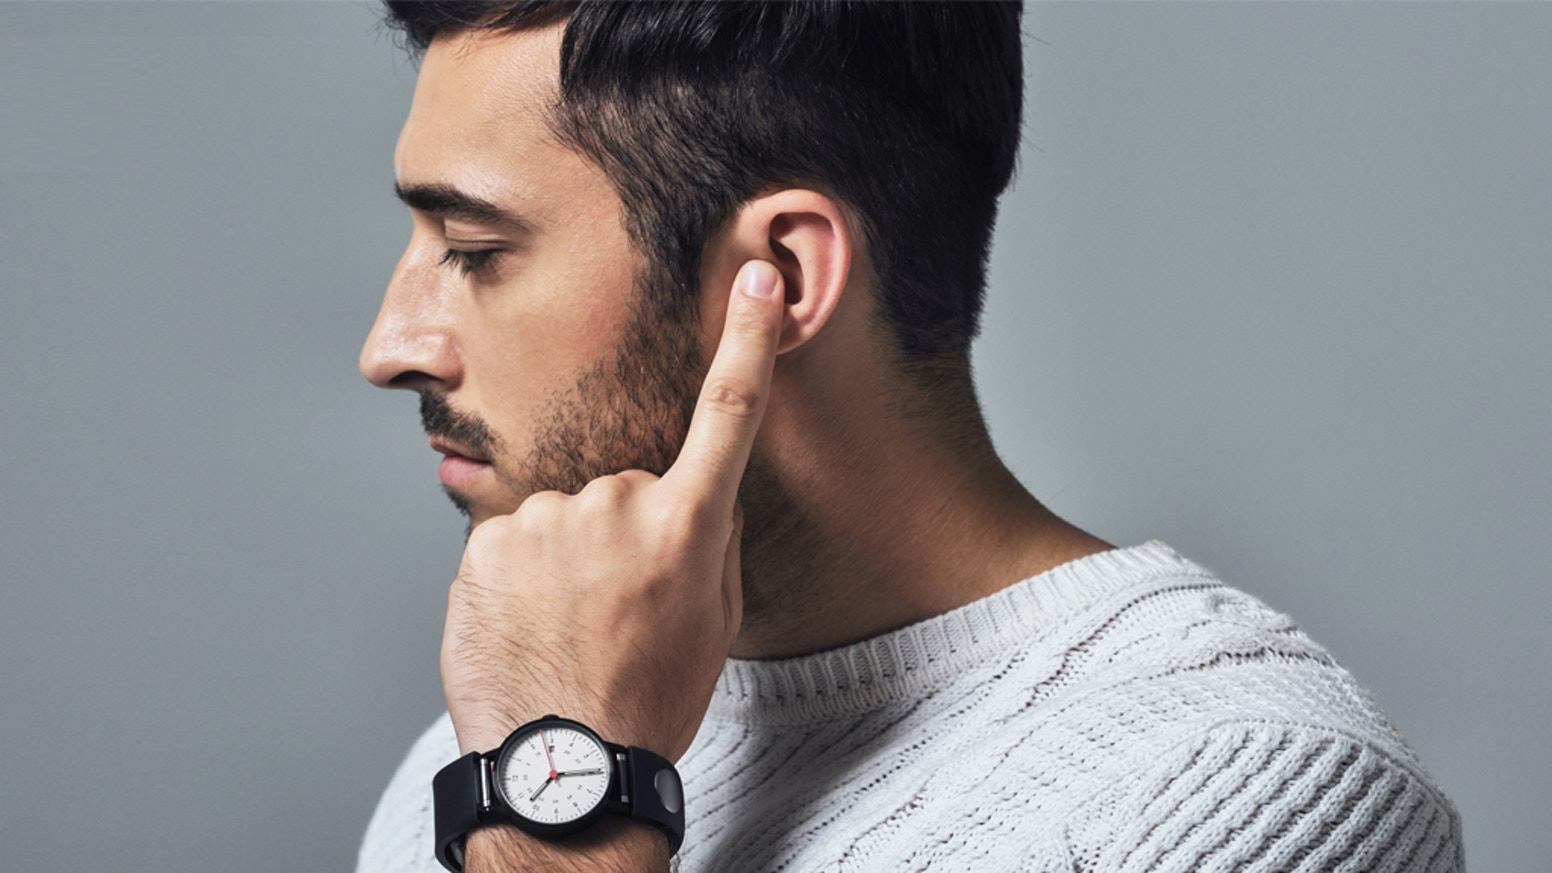 Wearable Gadget Sgnl - Make Phone Calls with Your Fingertip